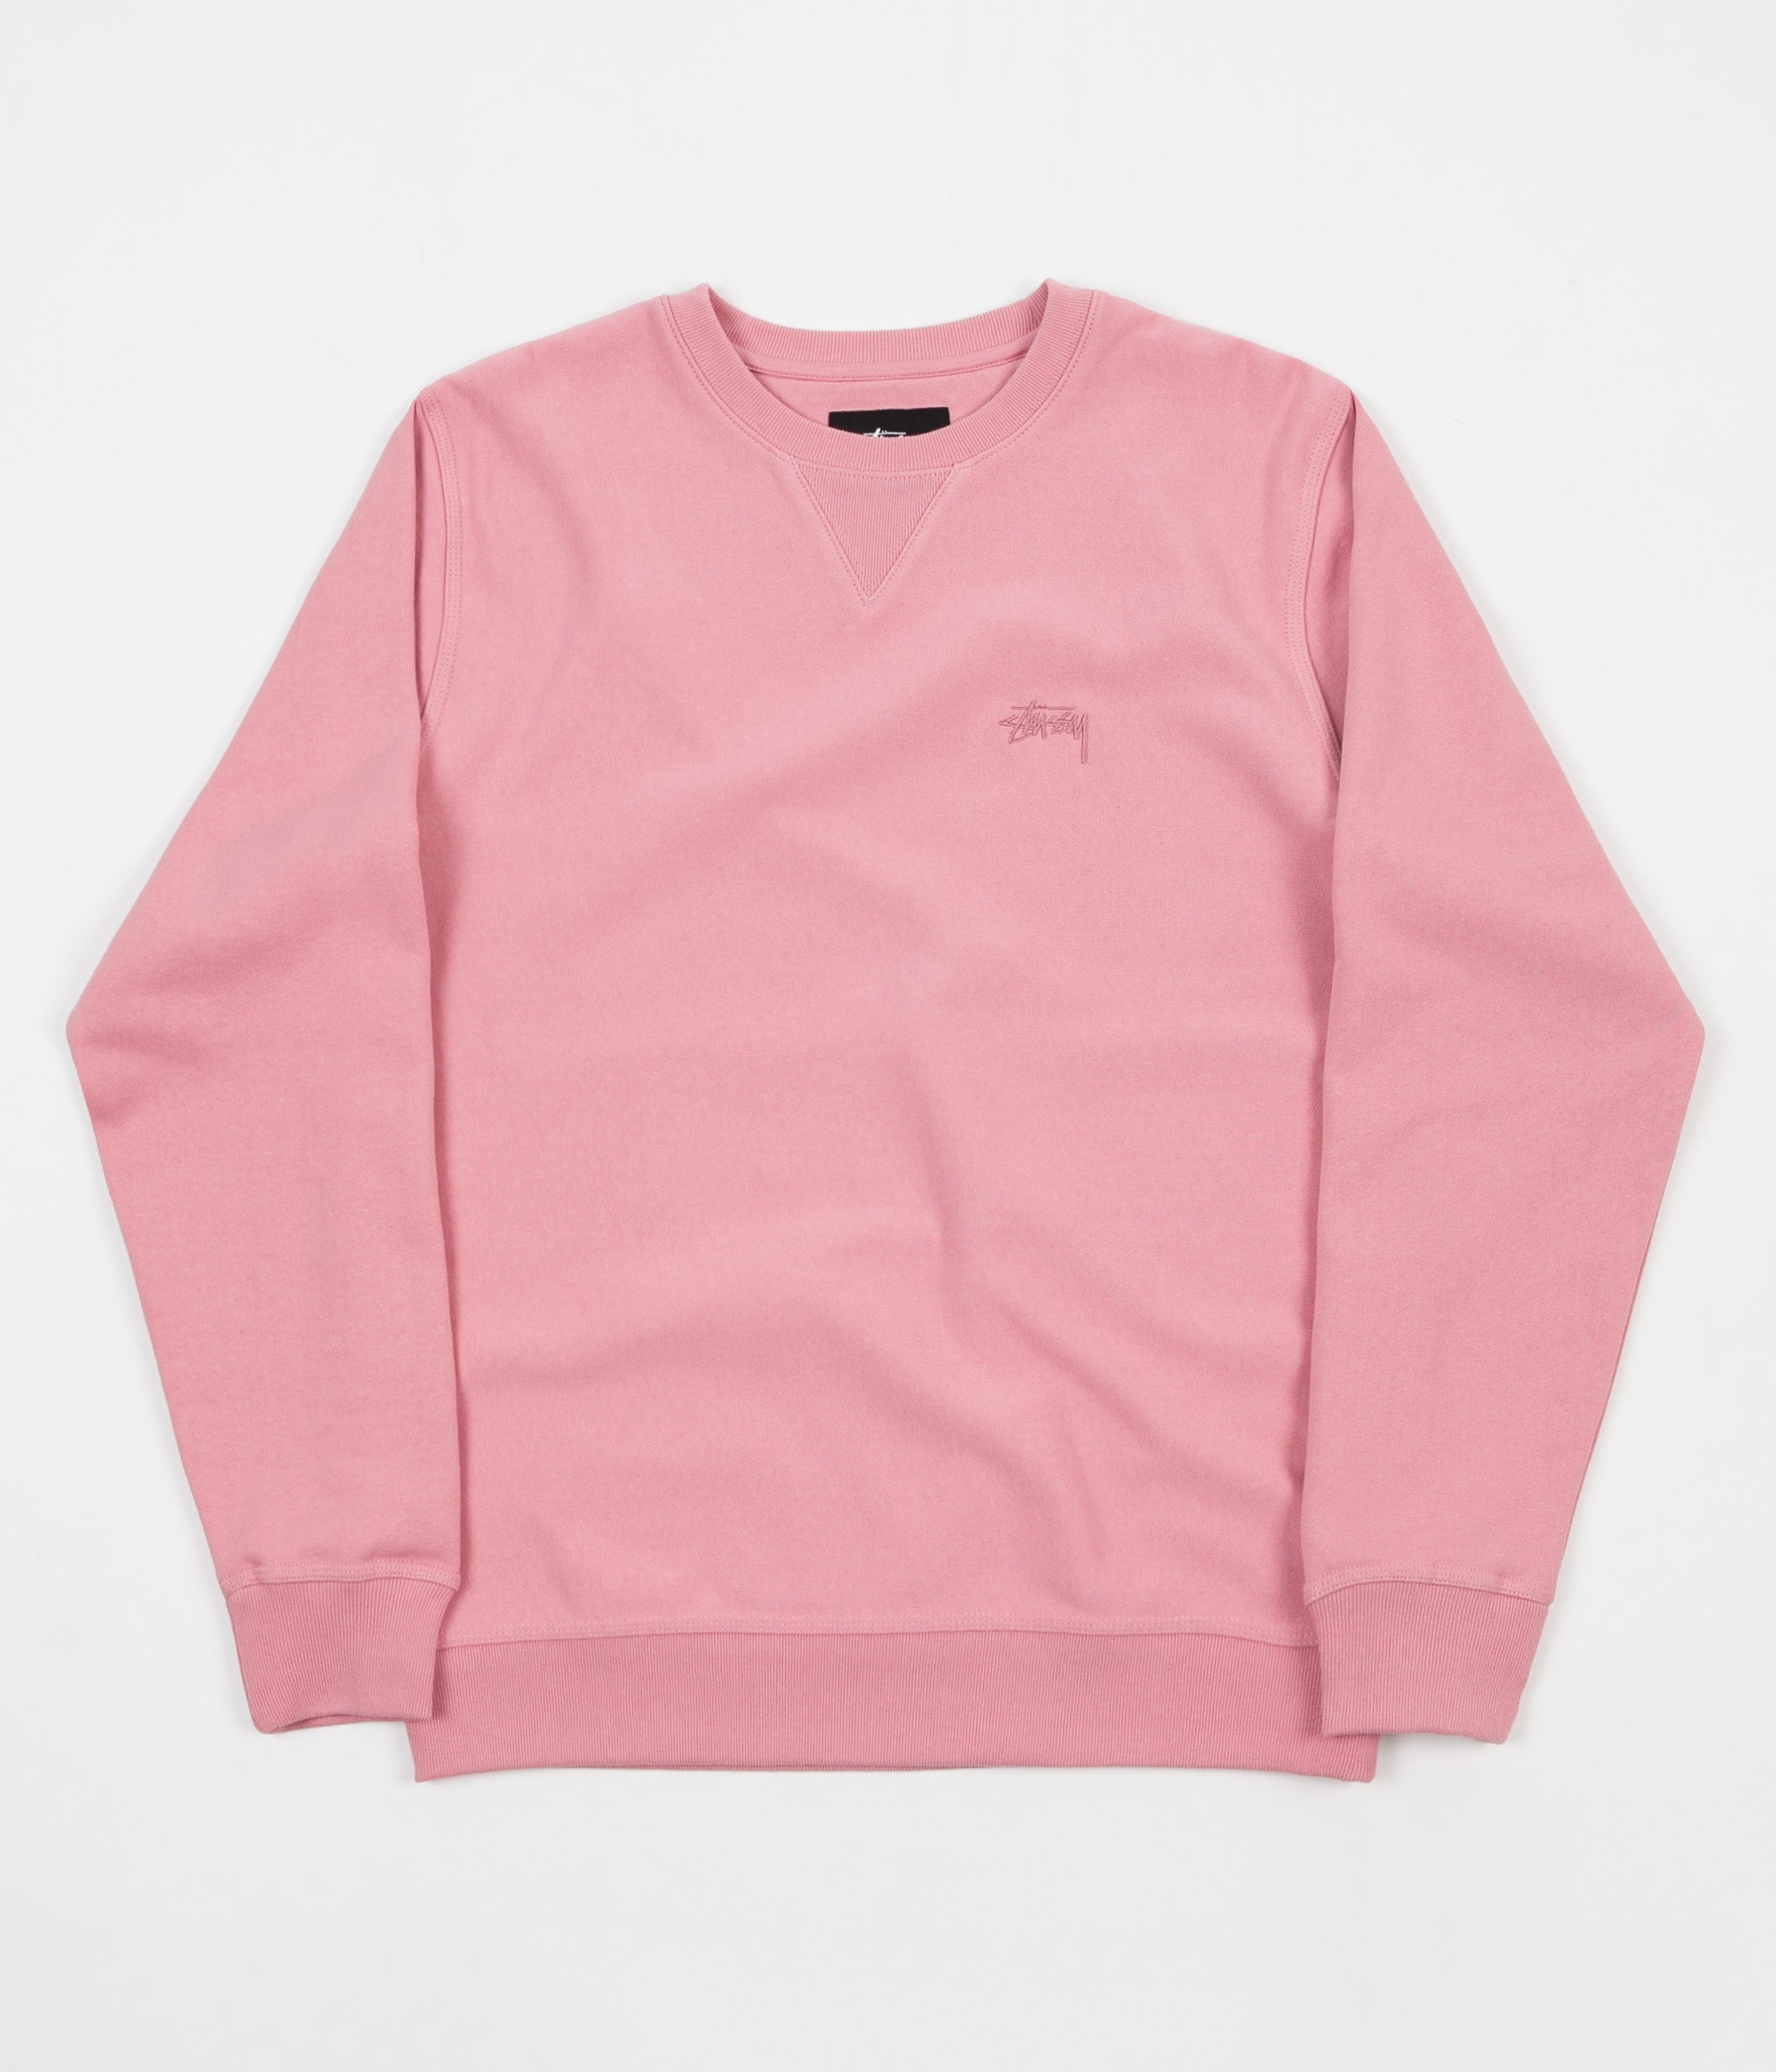 Stussy Stock Terry Crewneck Sweatshirt - Pink